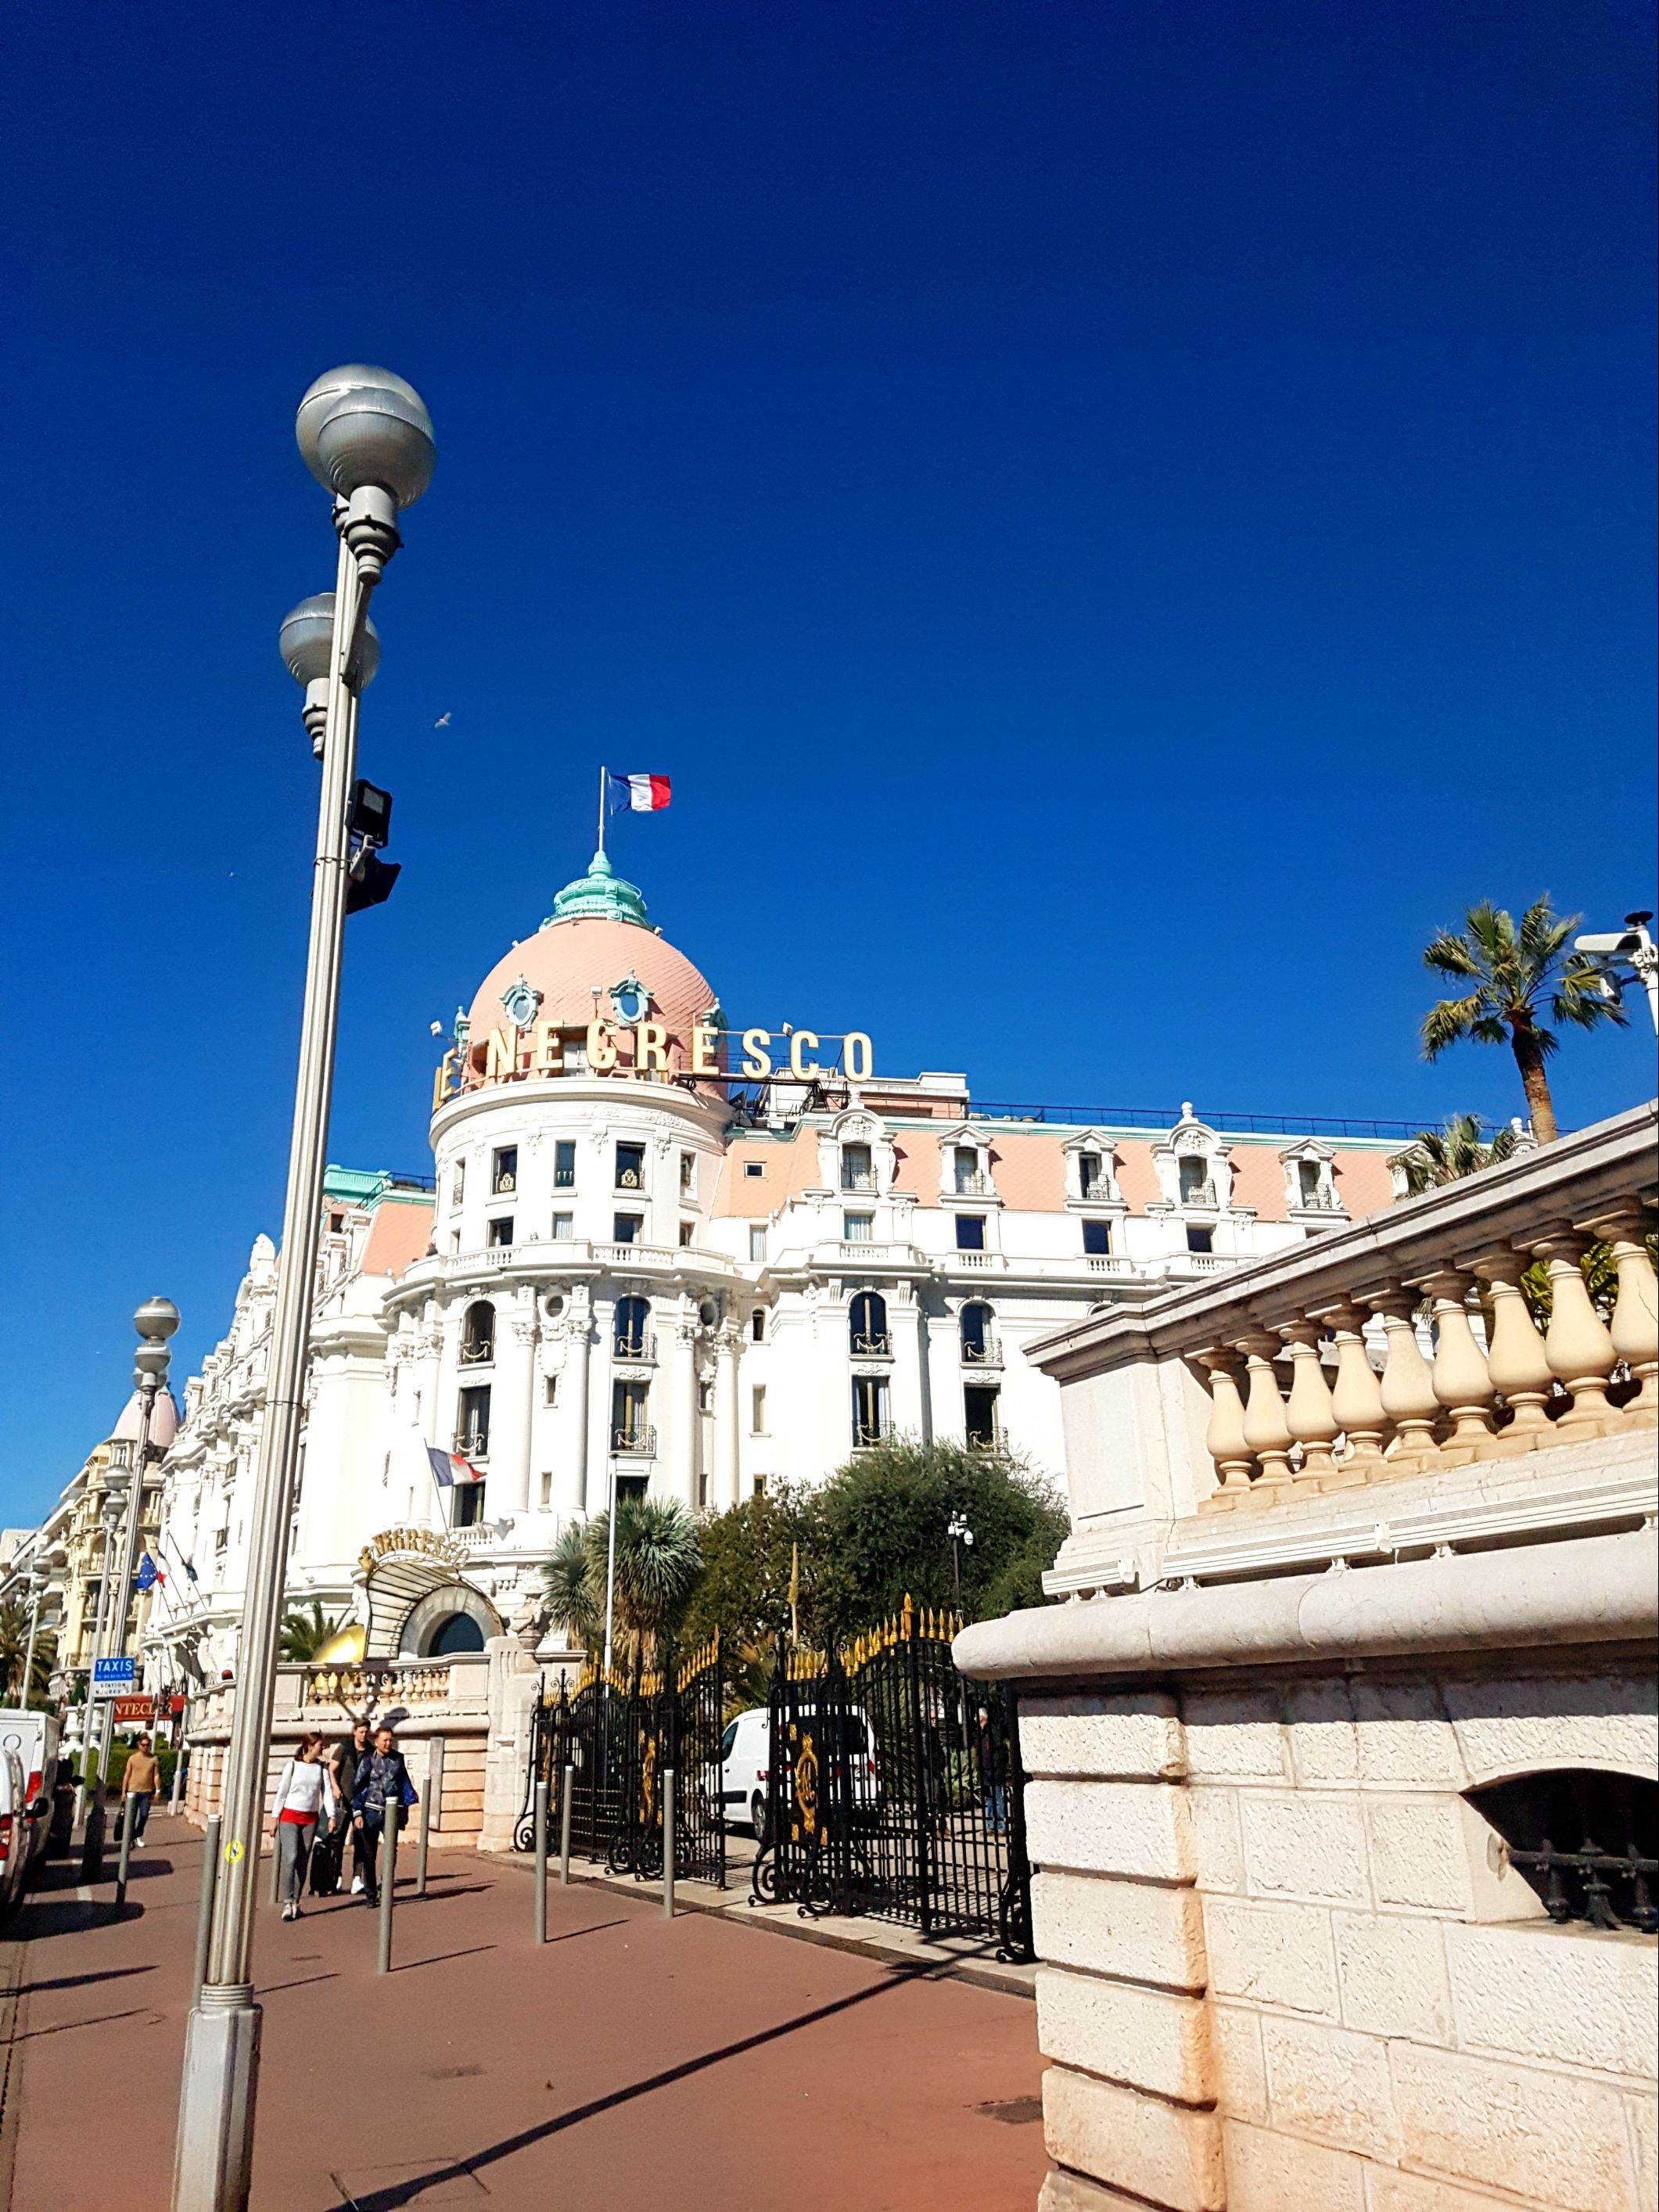 12 Things To Do In Nice - Nice France Travel Tips